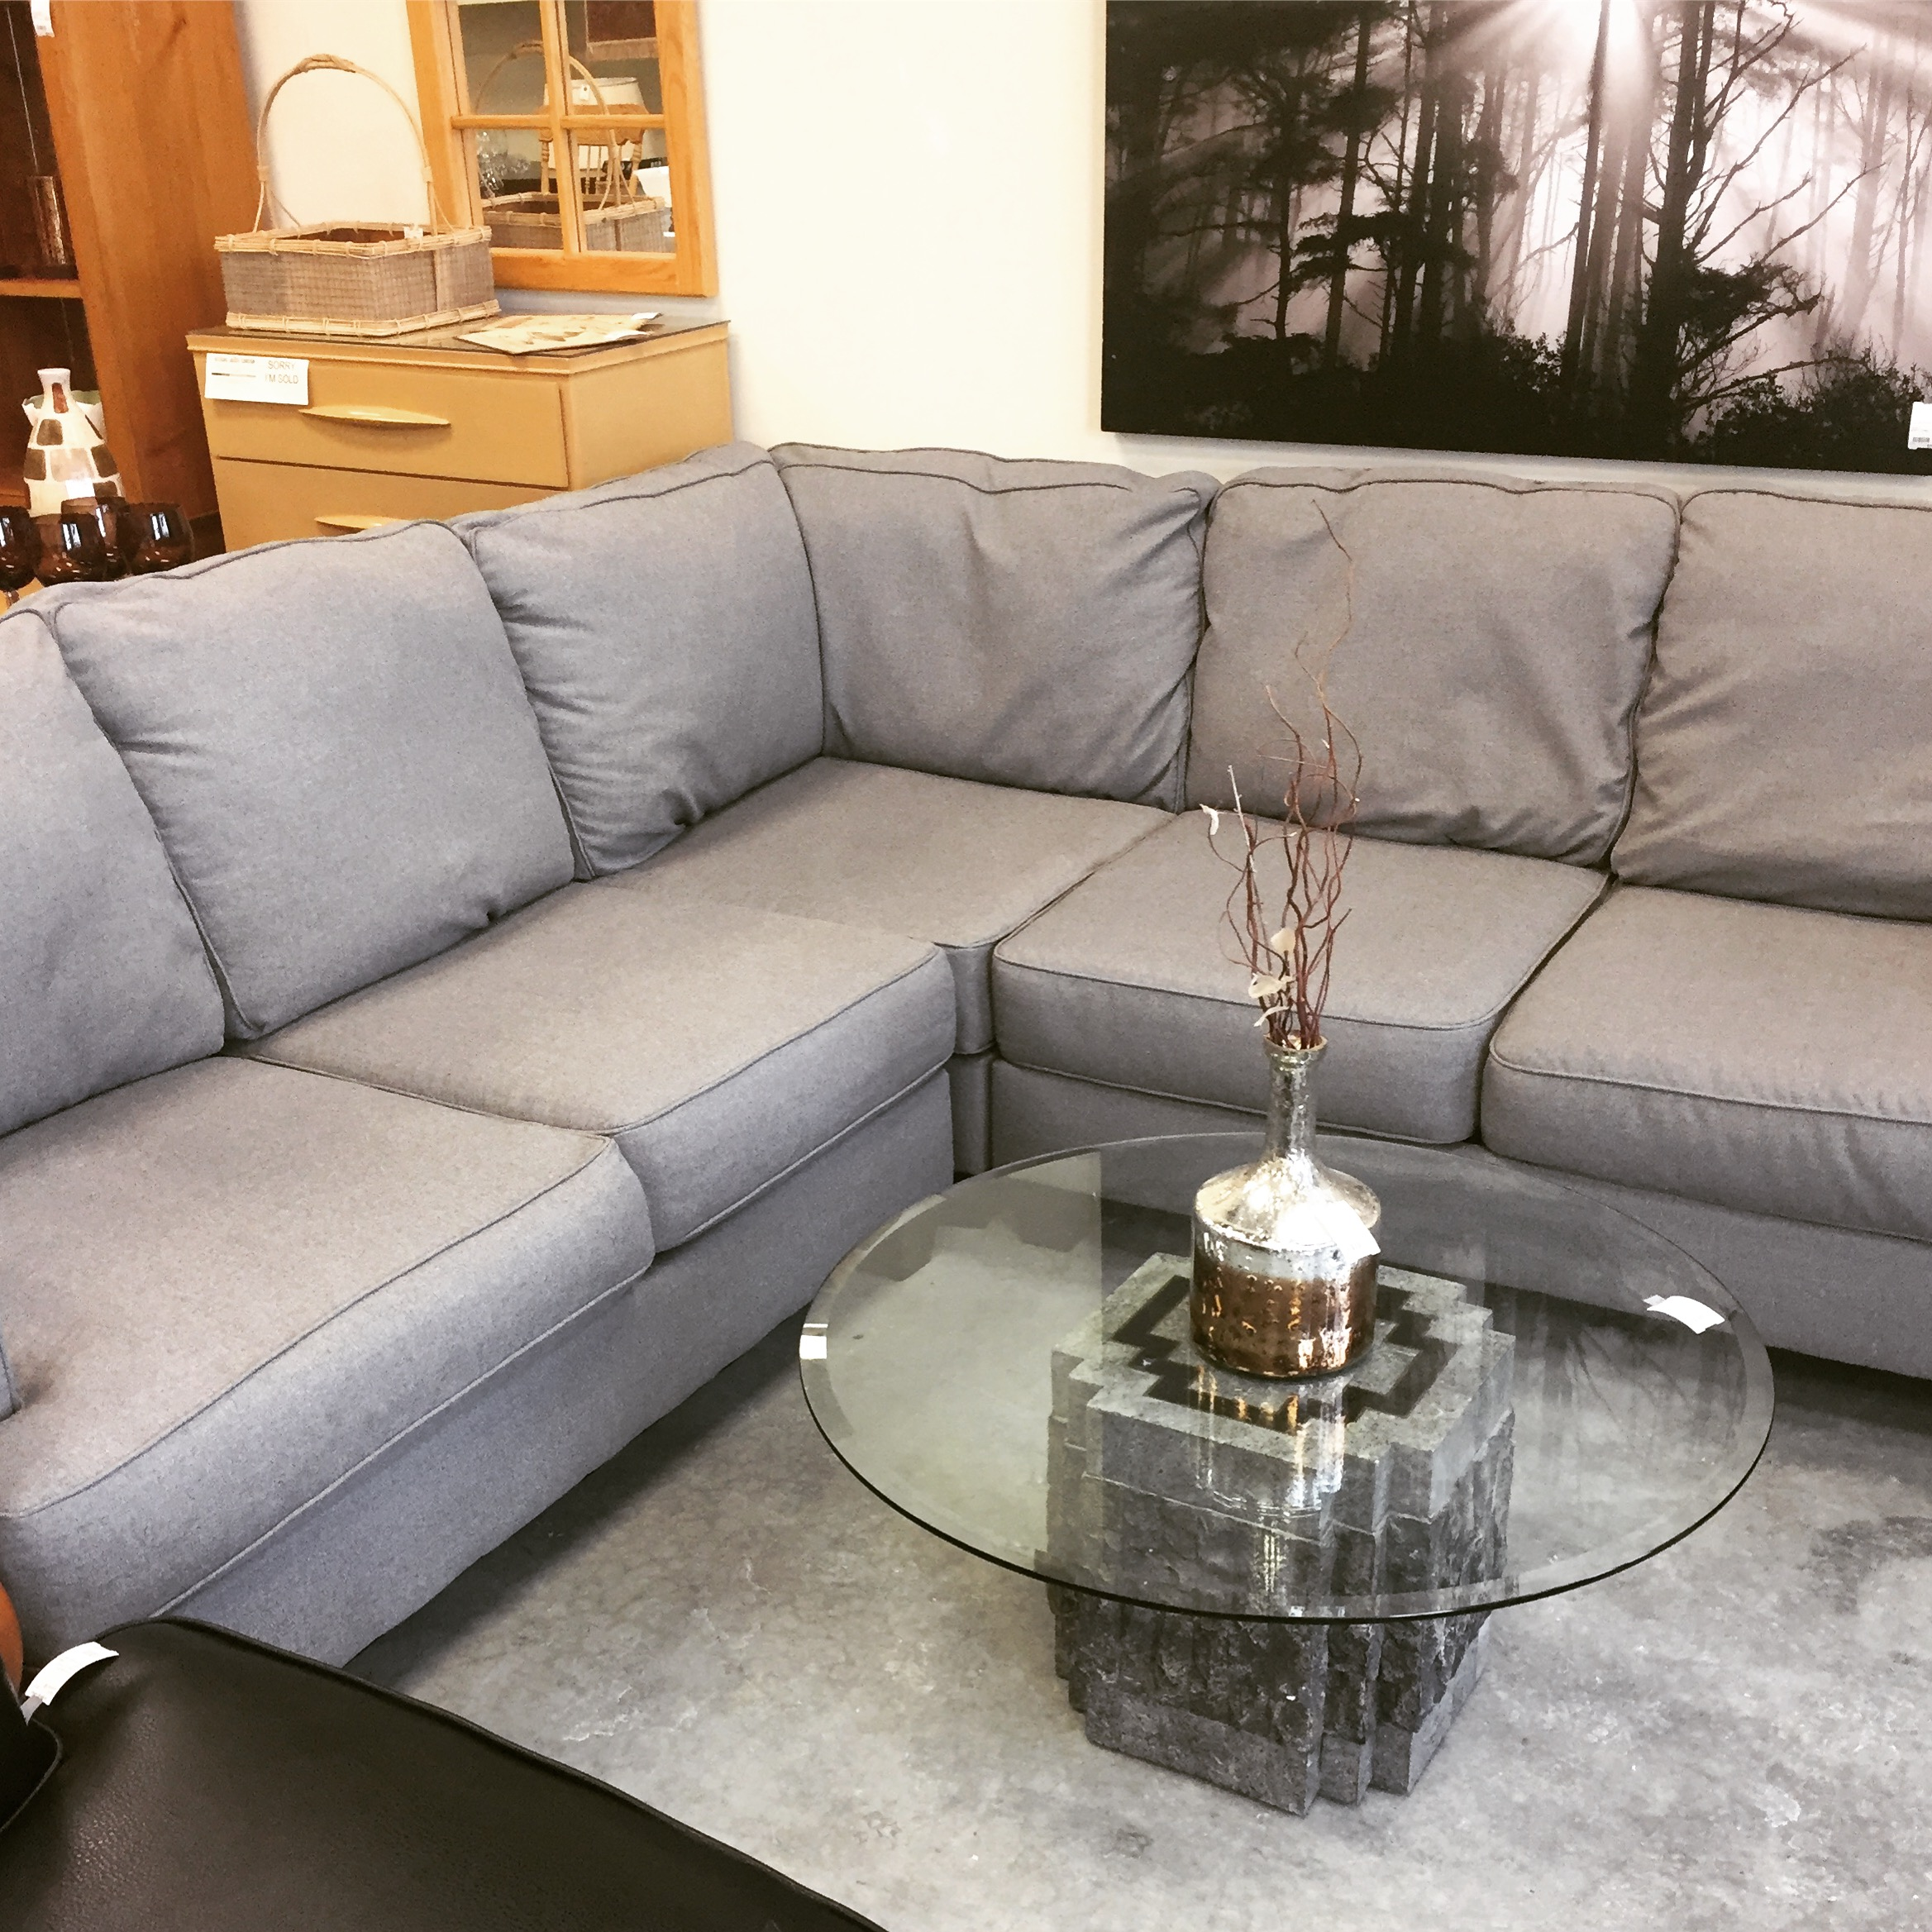 Miraculous 96 X 96 Grey Sectional Sofa Sold Designsbyconsign Caraccident5 Cool Chair Designs And Ideas Caraccident5Info